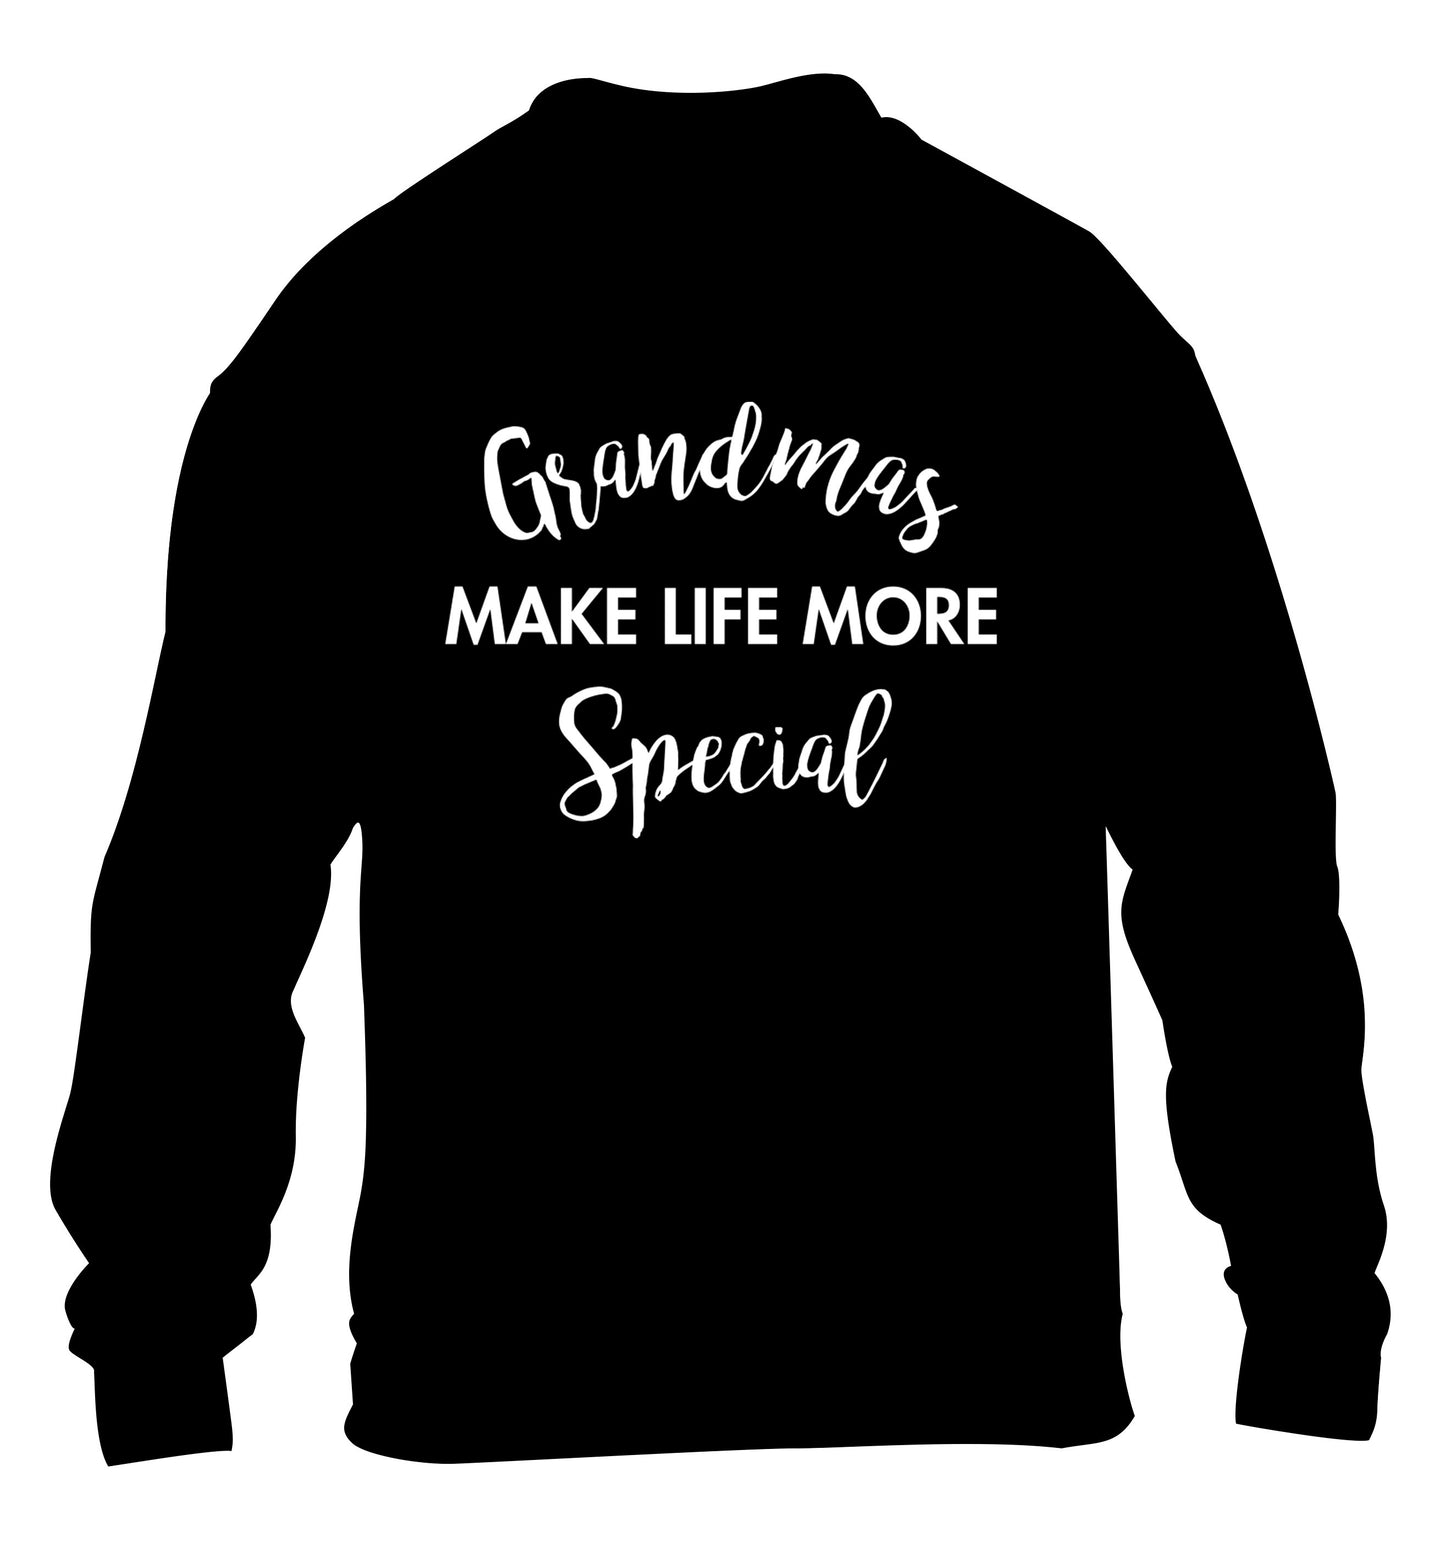 Grandmas make life more special children's black sweater 12-14 Years